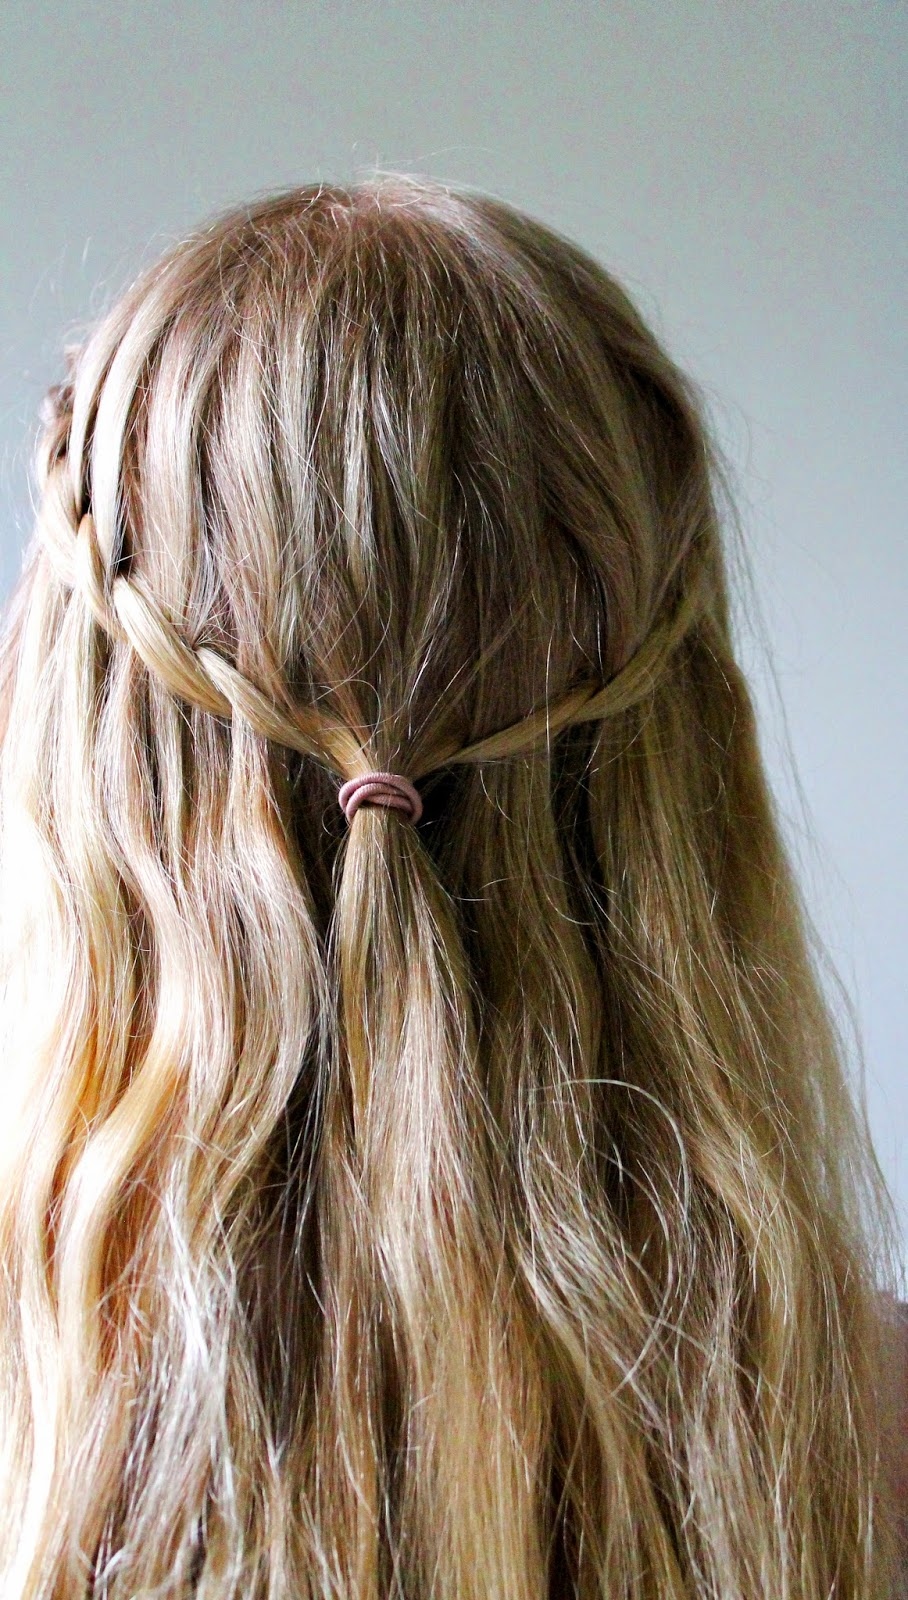 Waterfall braid | Alinan kotona blog